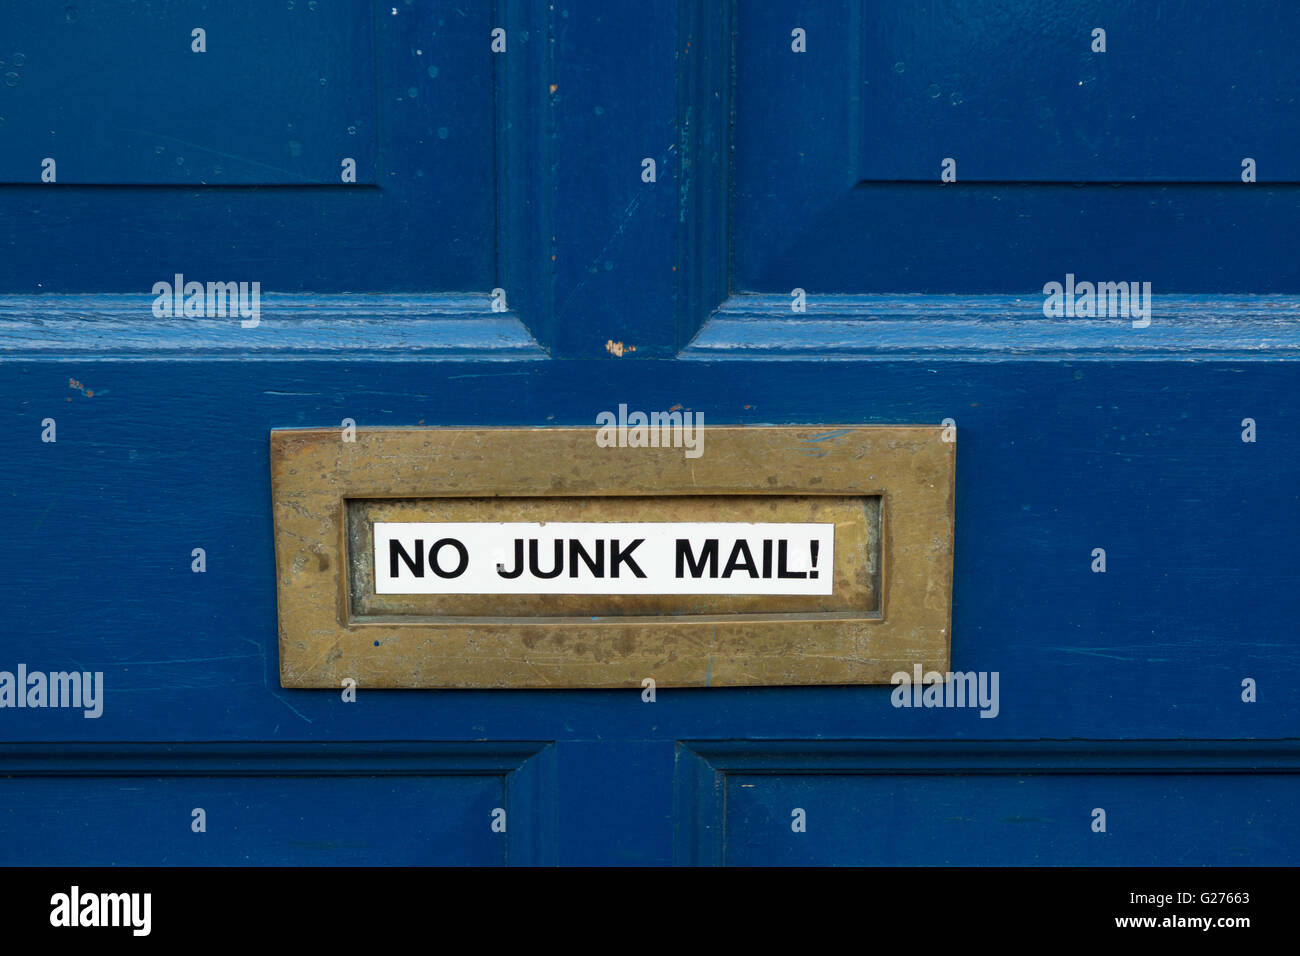 'No Junk Mail' sticker on brass letterbox on blue painted front door - Stock Image